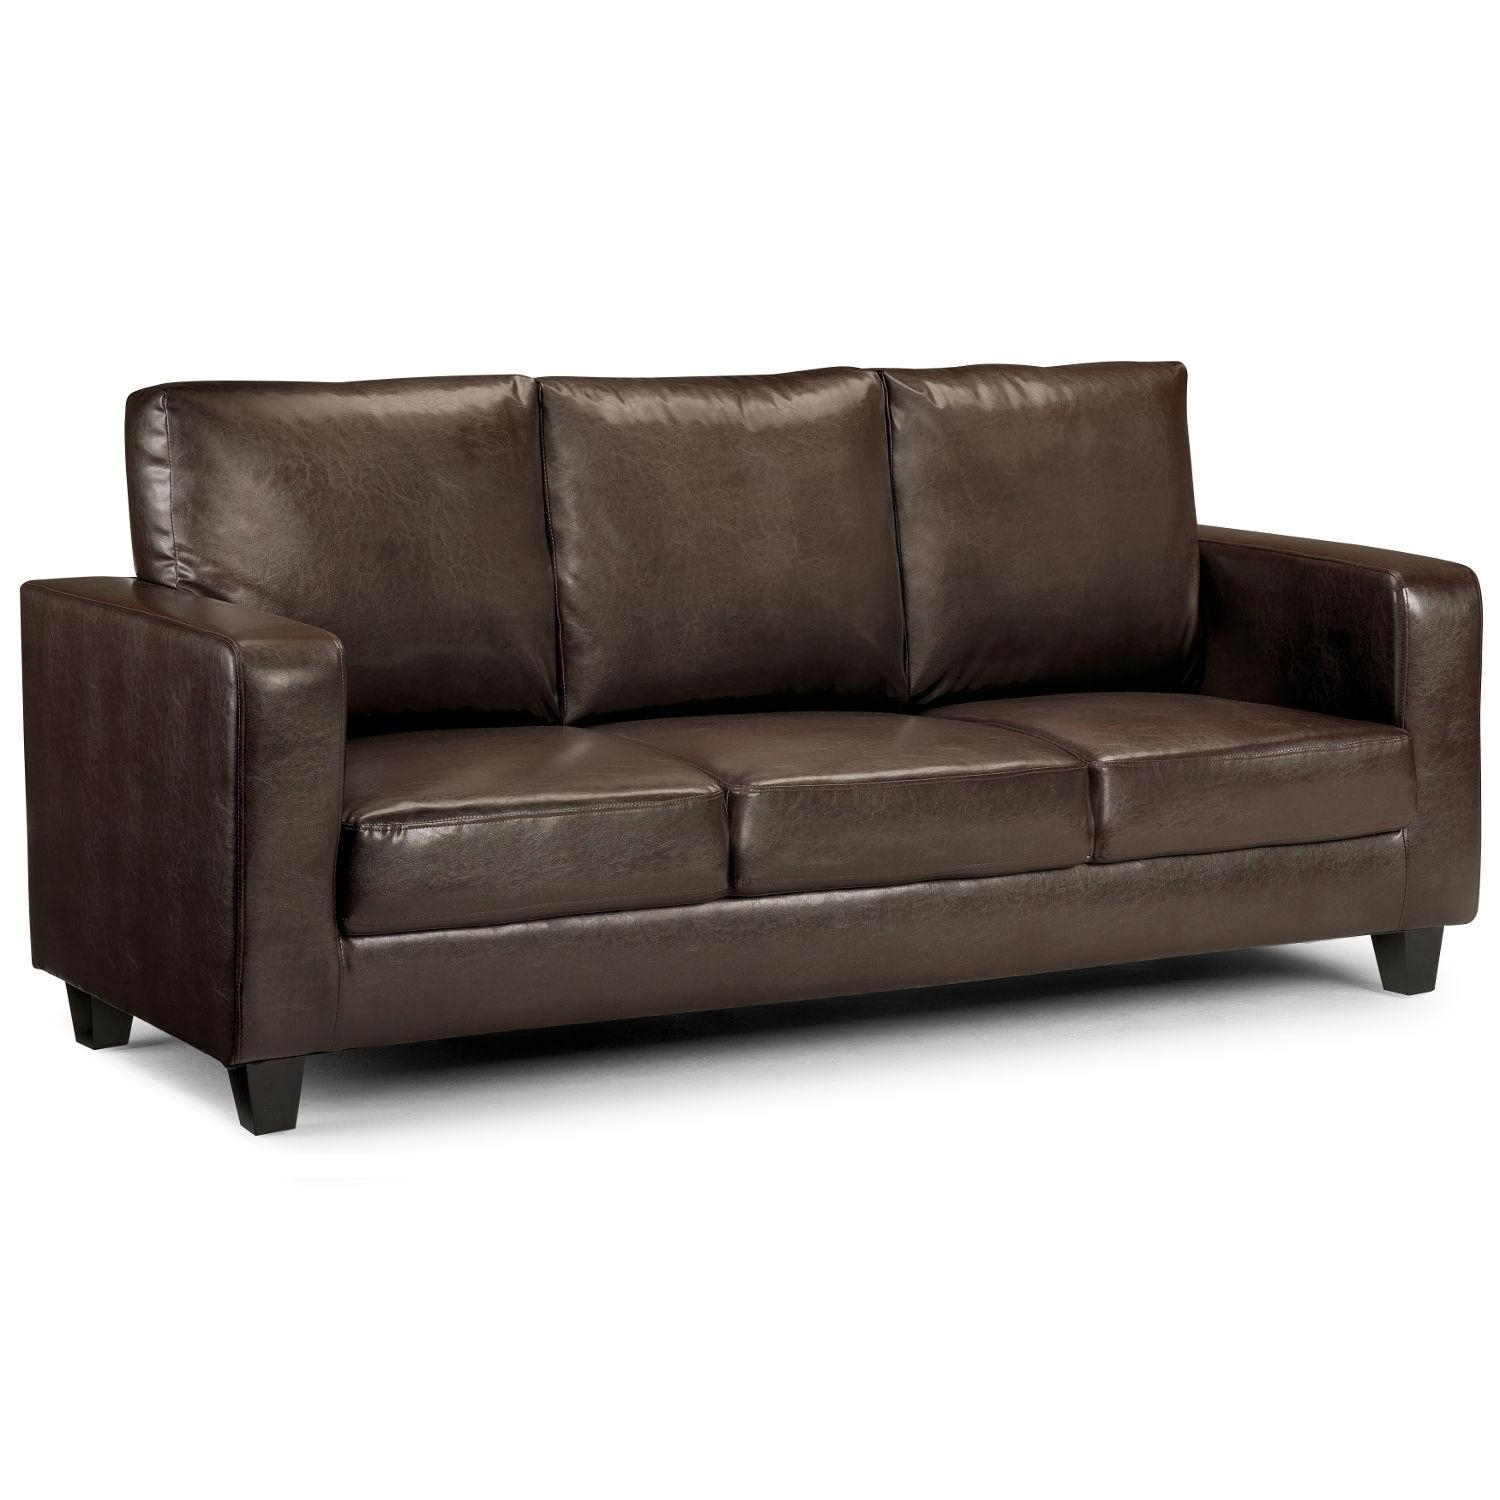 Matthew 3 Seater Faux Leather Sofa – Next Day Delivery Matthew 3 With 3 Seater Leather Sofas (Image 7 of 20)